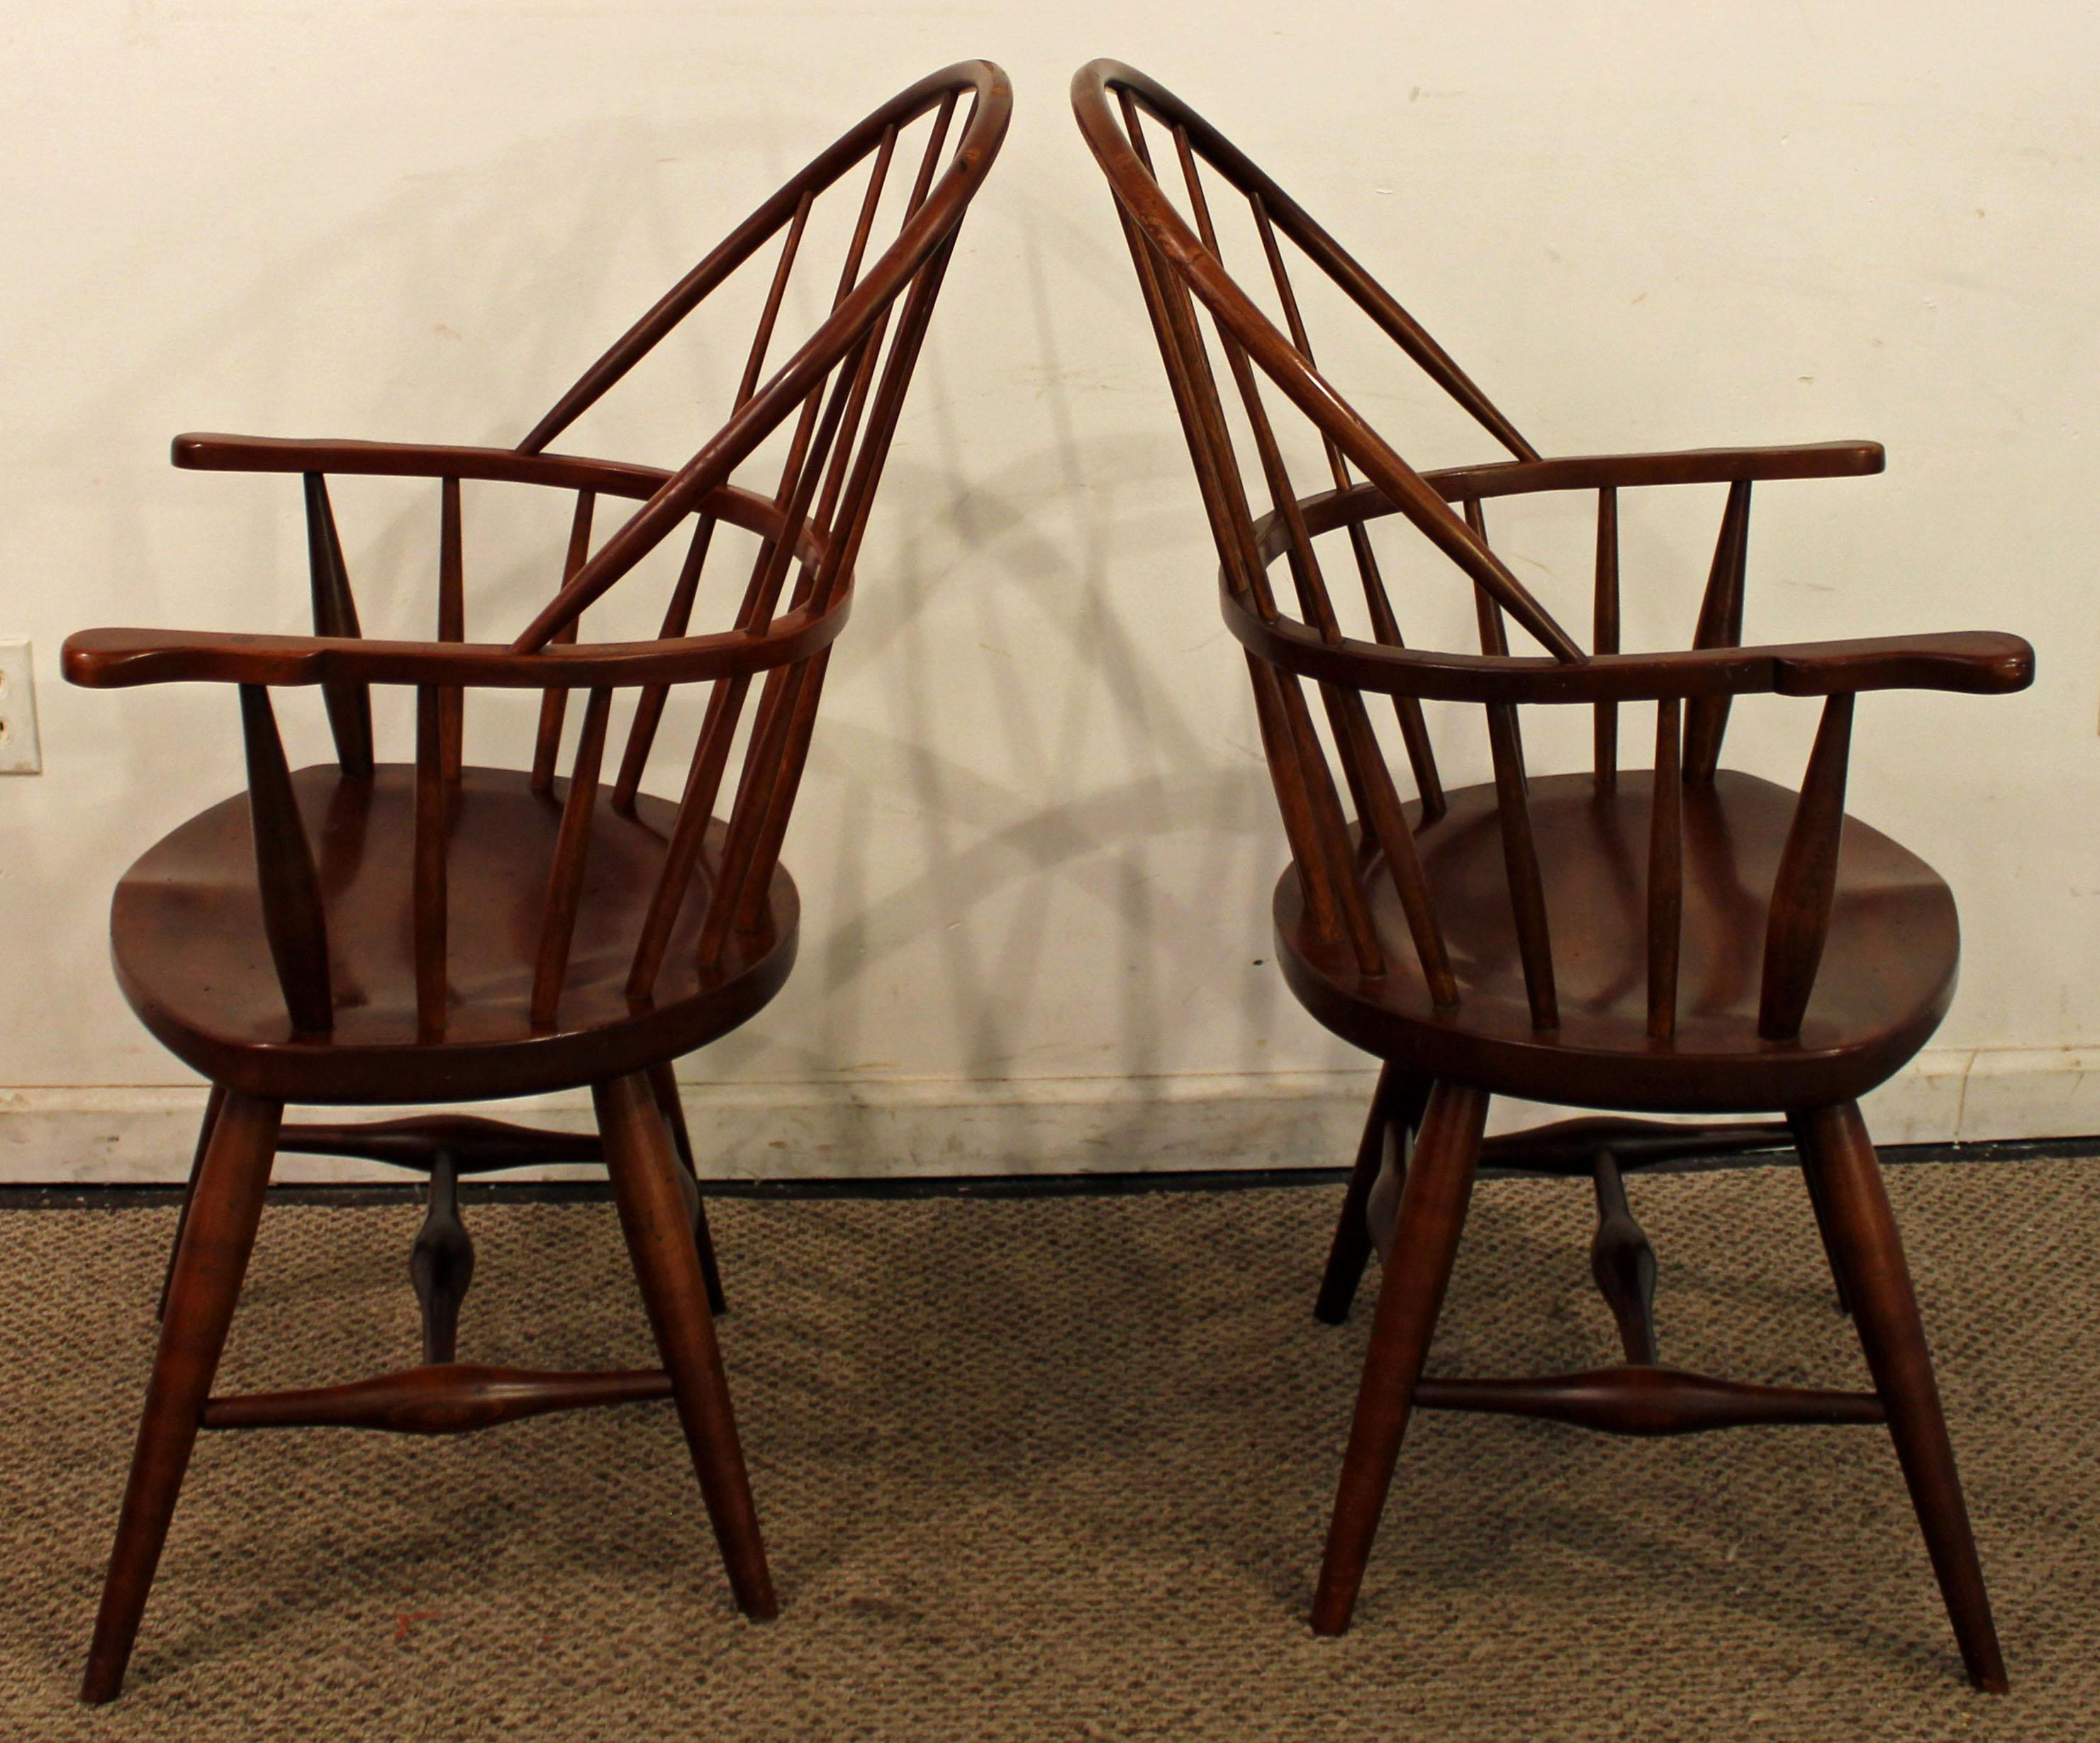 Lovely Duckloe Bros Cherry Hoop Back Windsor Arm Dining Chairs   A Pair   Image 3